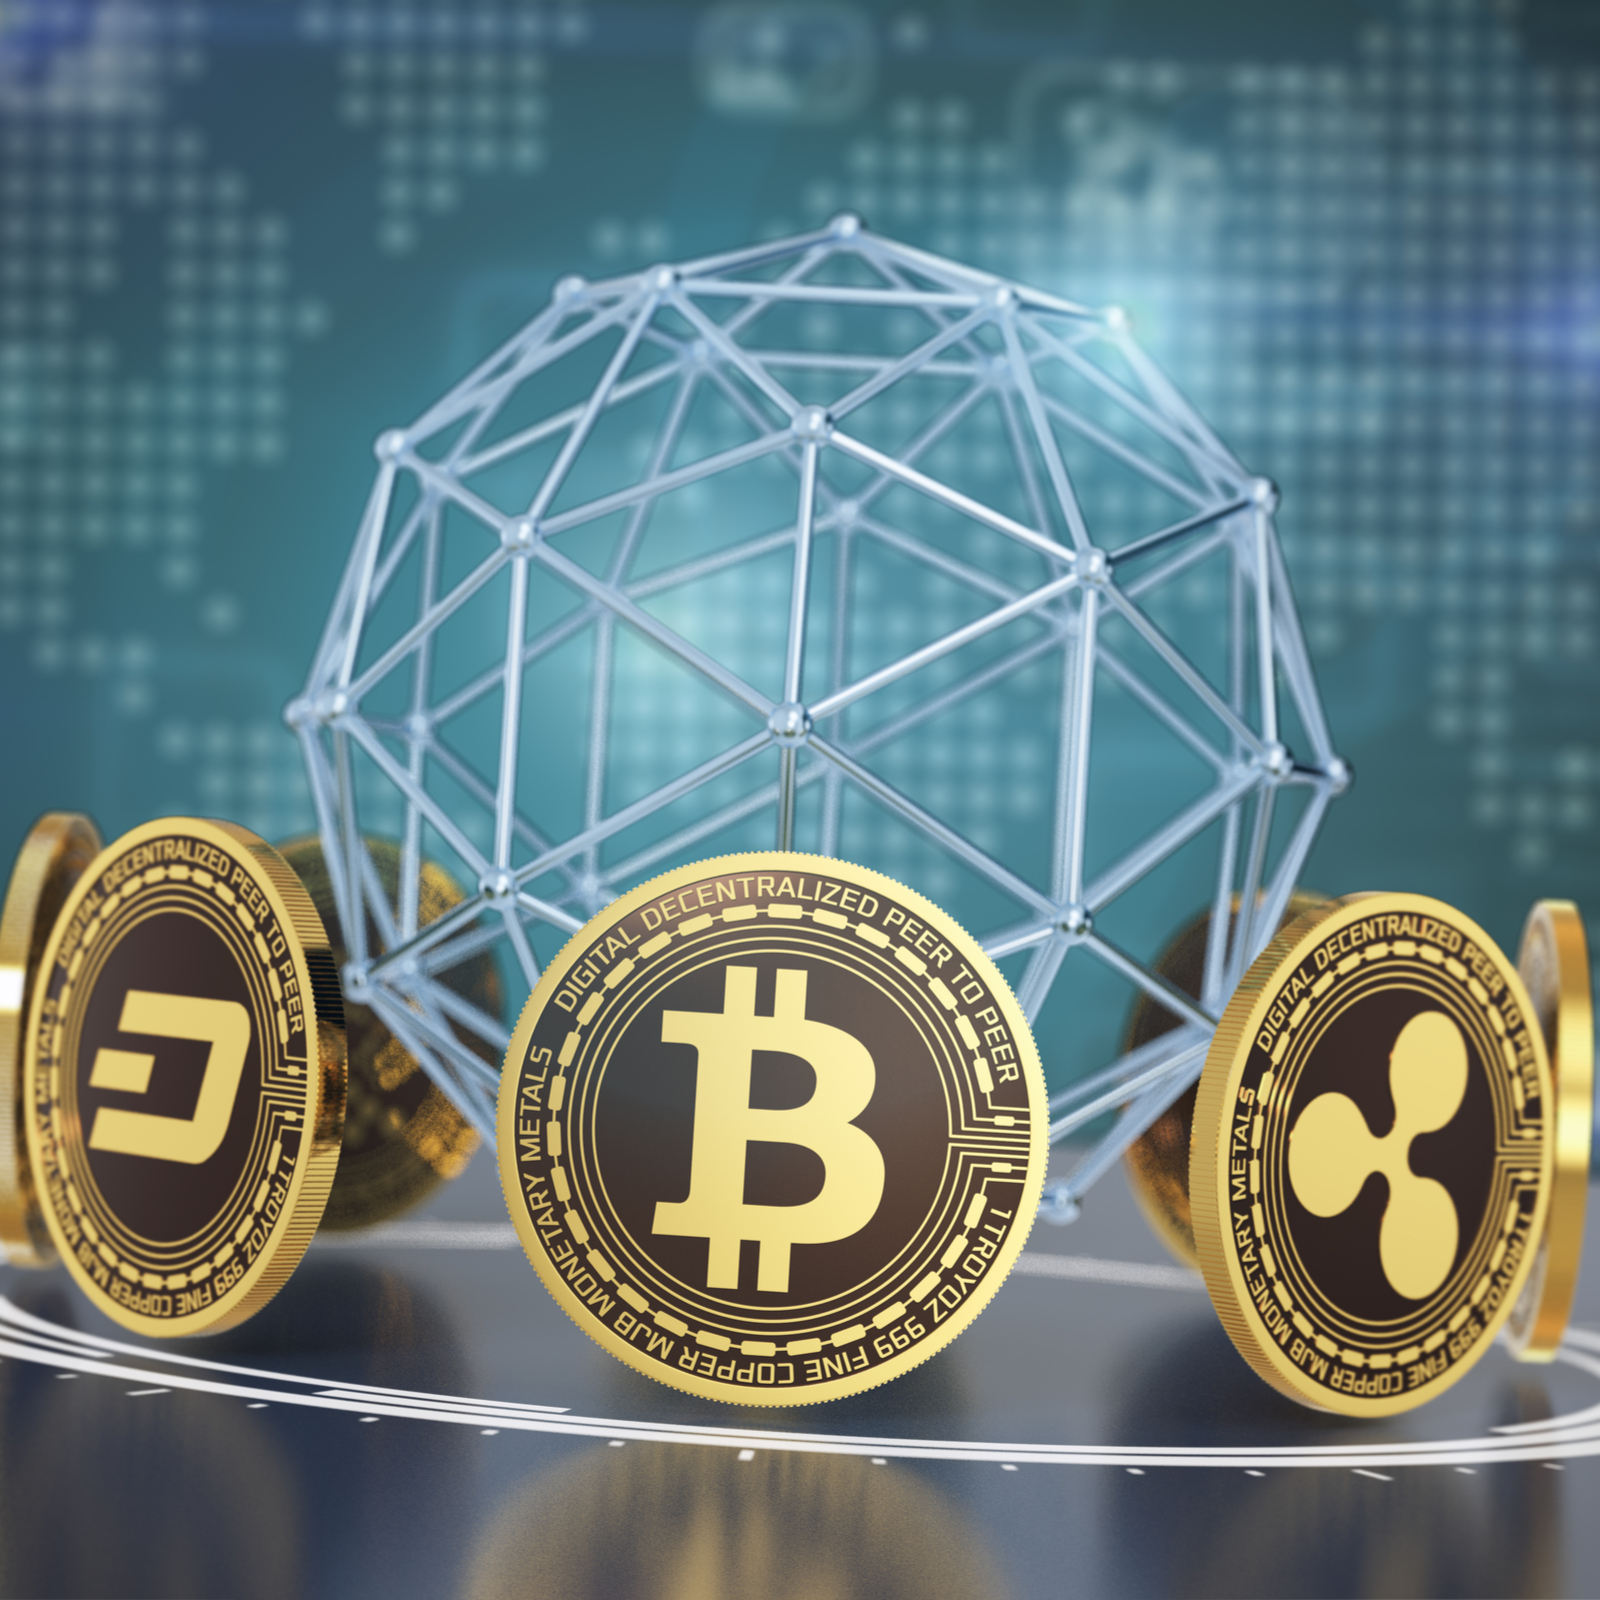 Exchanges Roundup: Revolut CEO on Institutional Investment, Binance Launches Research Division